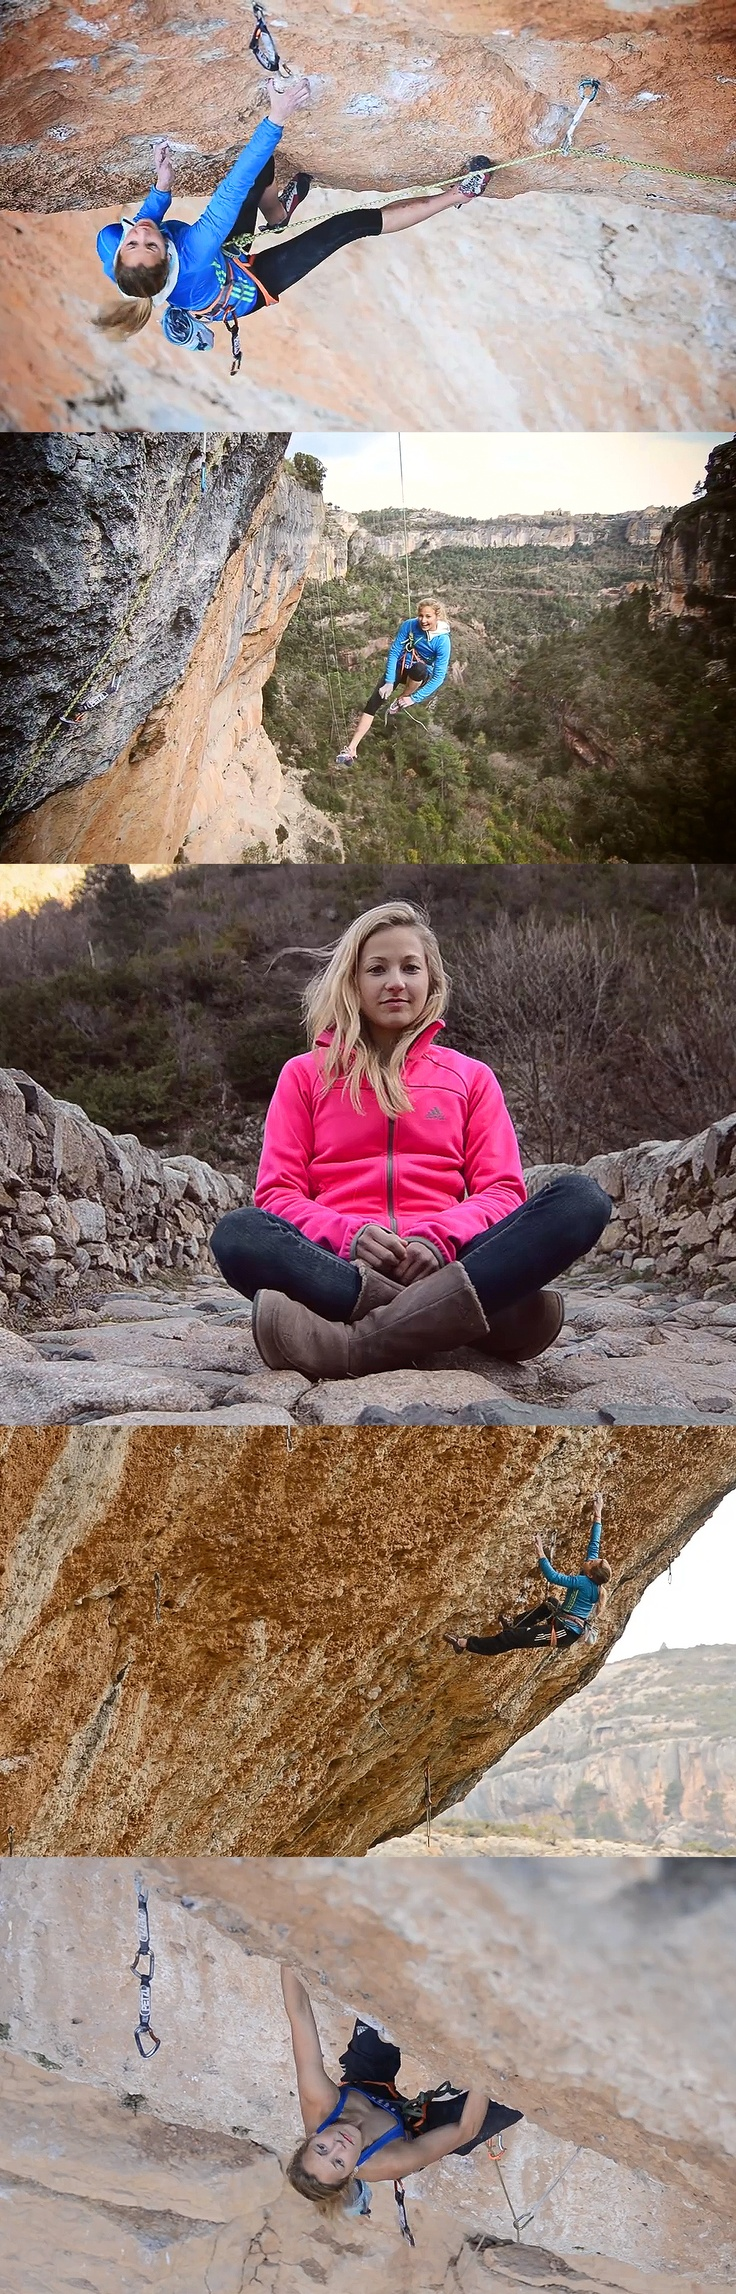 Class up your act with the five ten dirtbag lace the outdoor gear - Sasha Diguilian S Battle To Raise The Bar